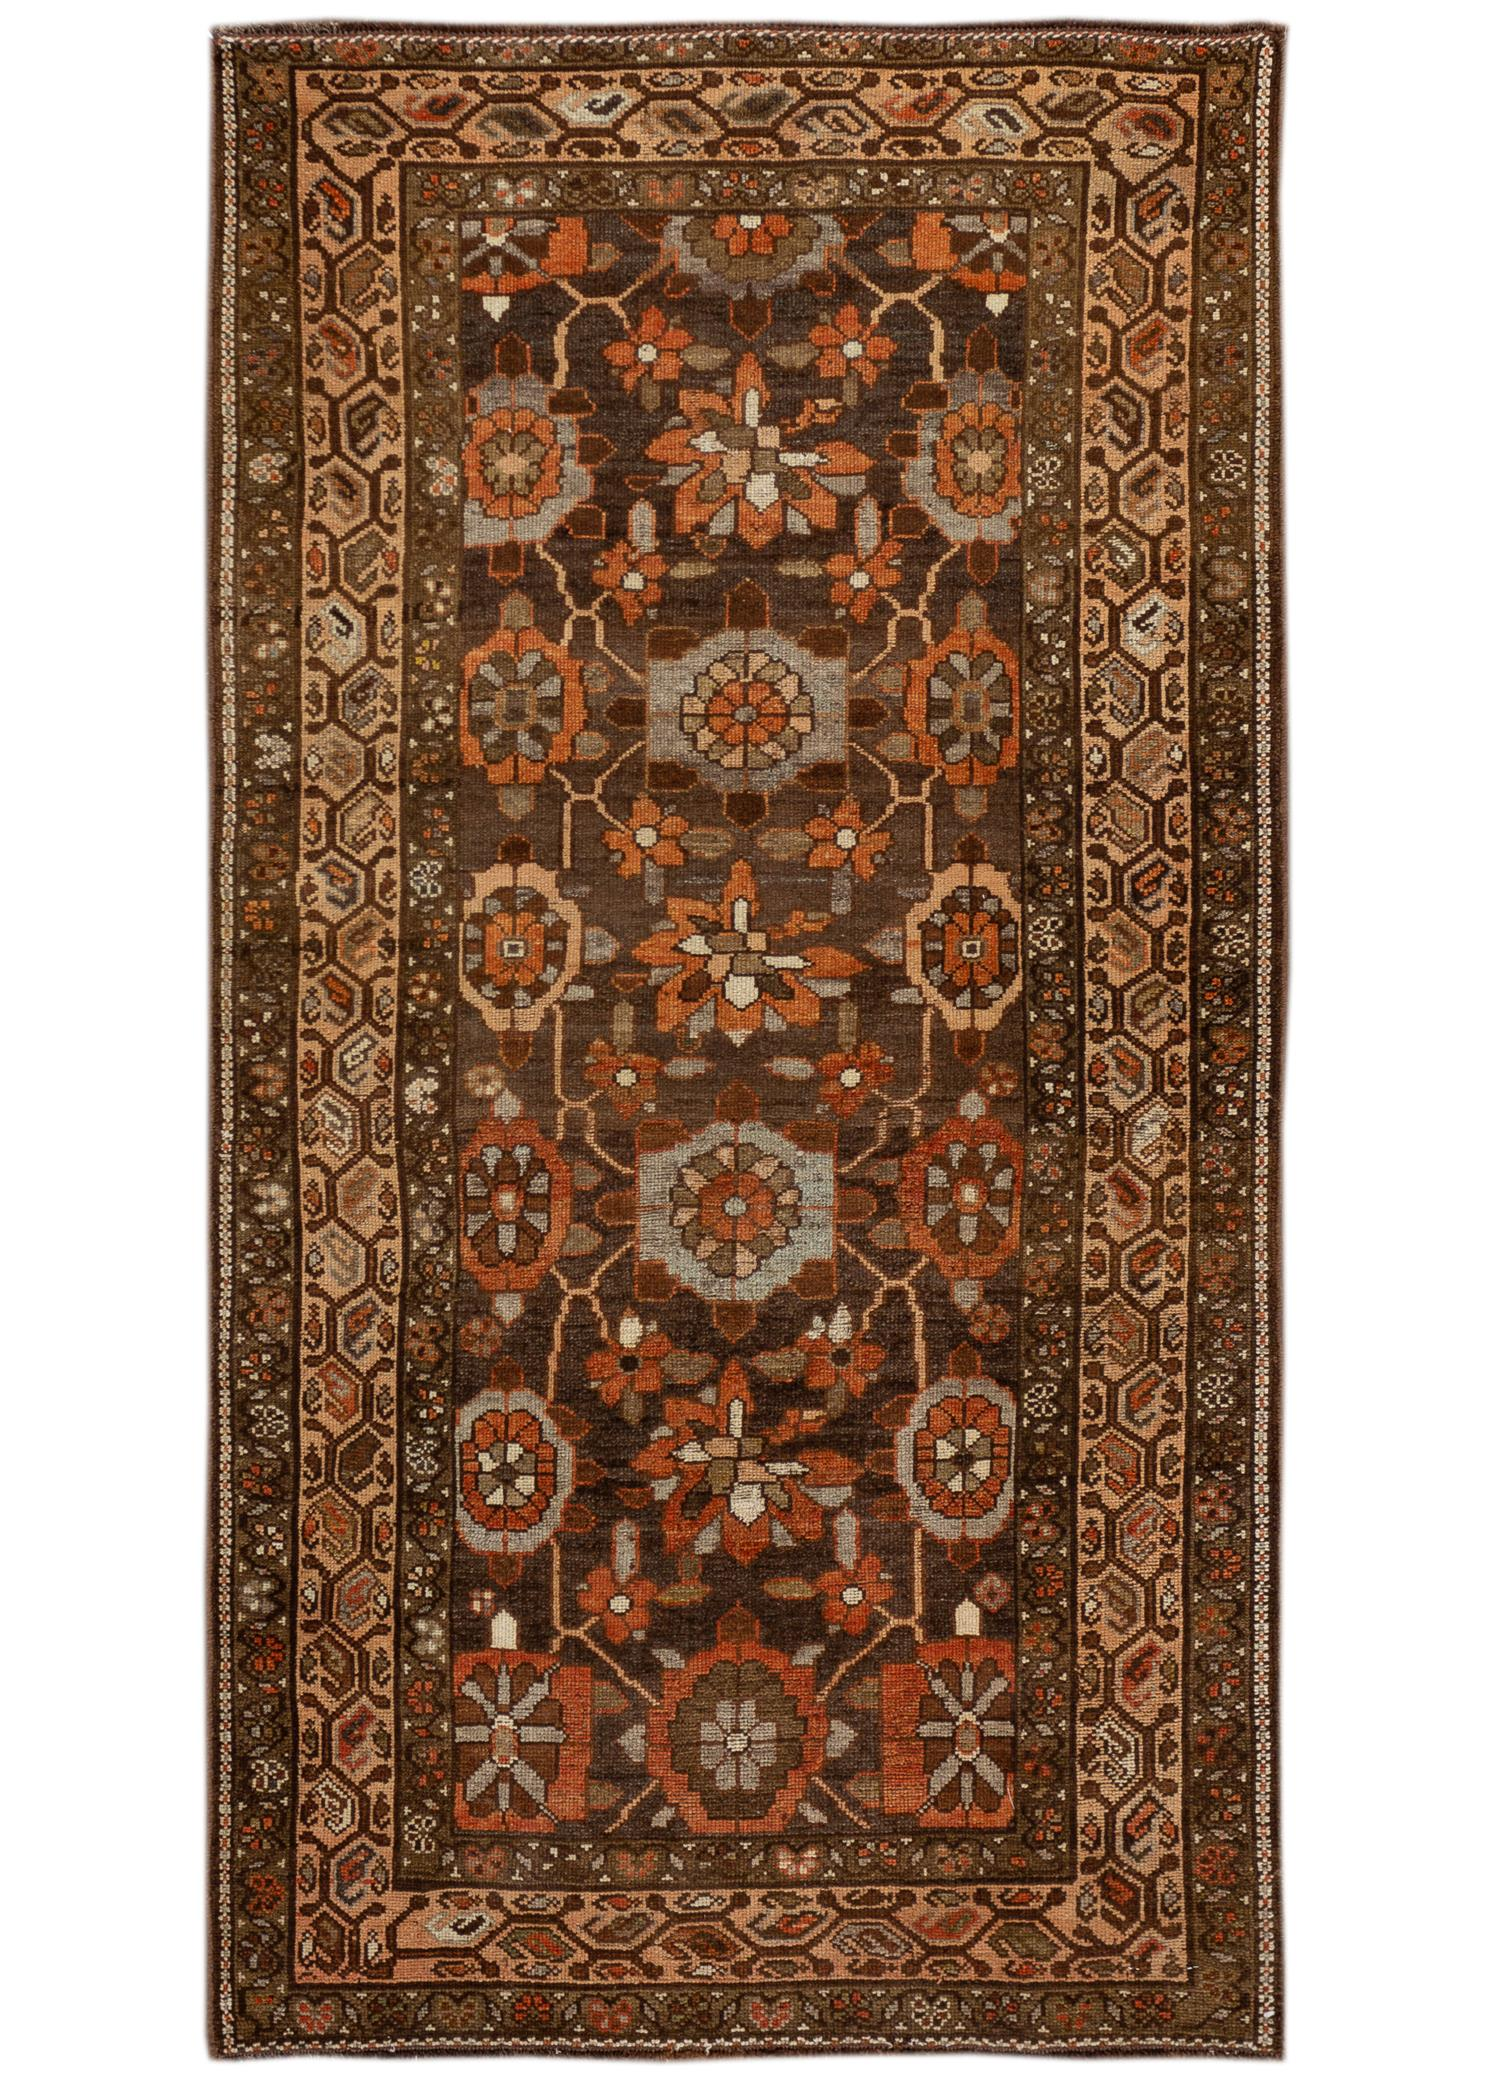 Antique Kurd Rug, #10235266, 4' x 7'